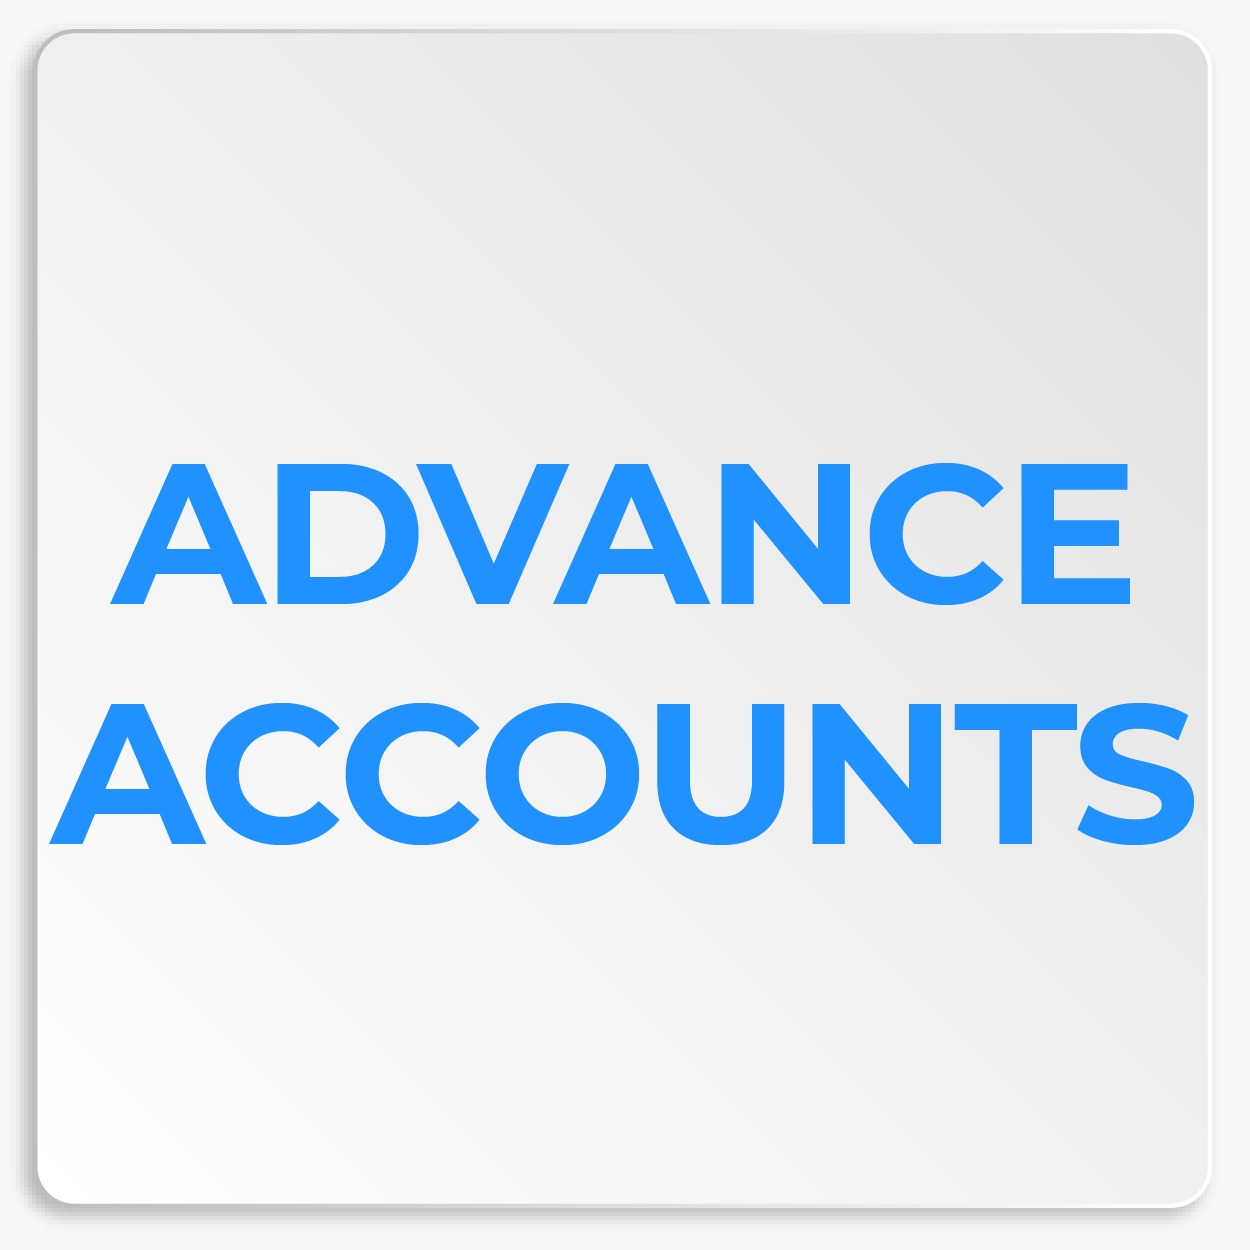 Advance Accounts